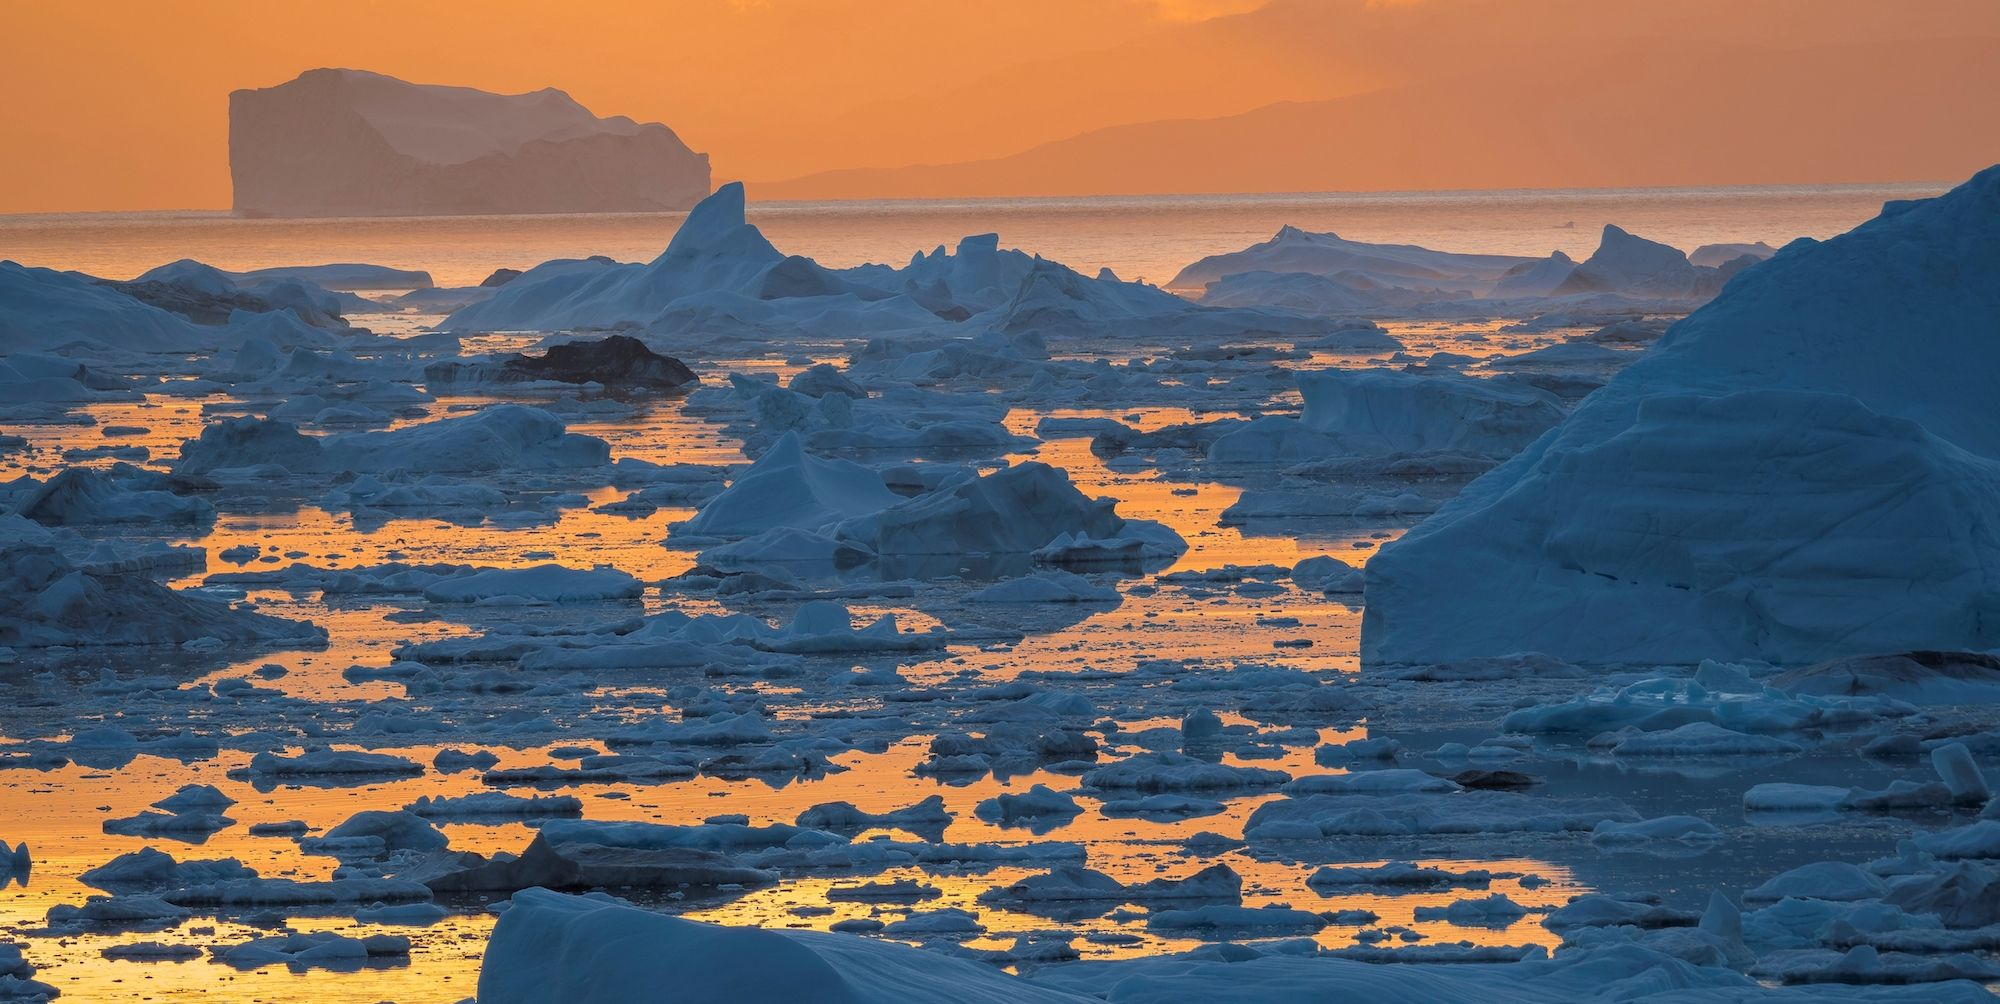 Ilulissat Icefjord also called kangia or Ilulissat Kangerlua sunset over Disko Bay The icefjord is listed as UNESCO world heritage America North America Greenland Denmark